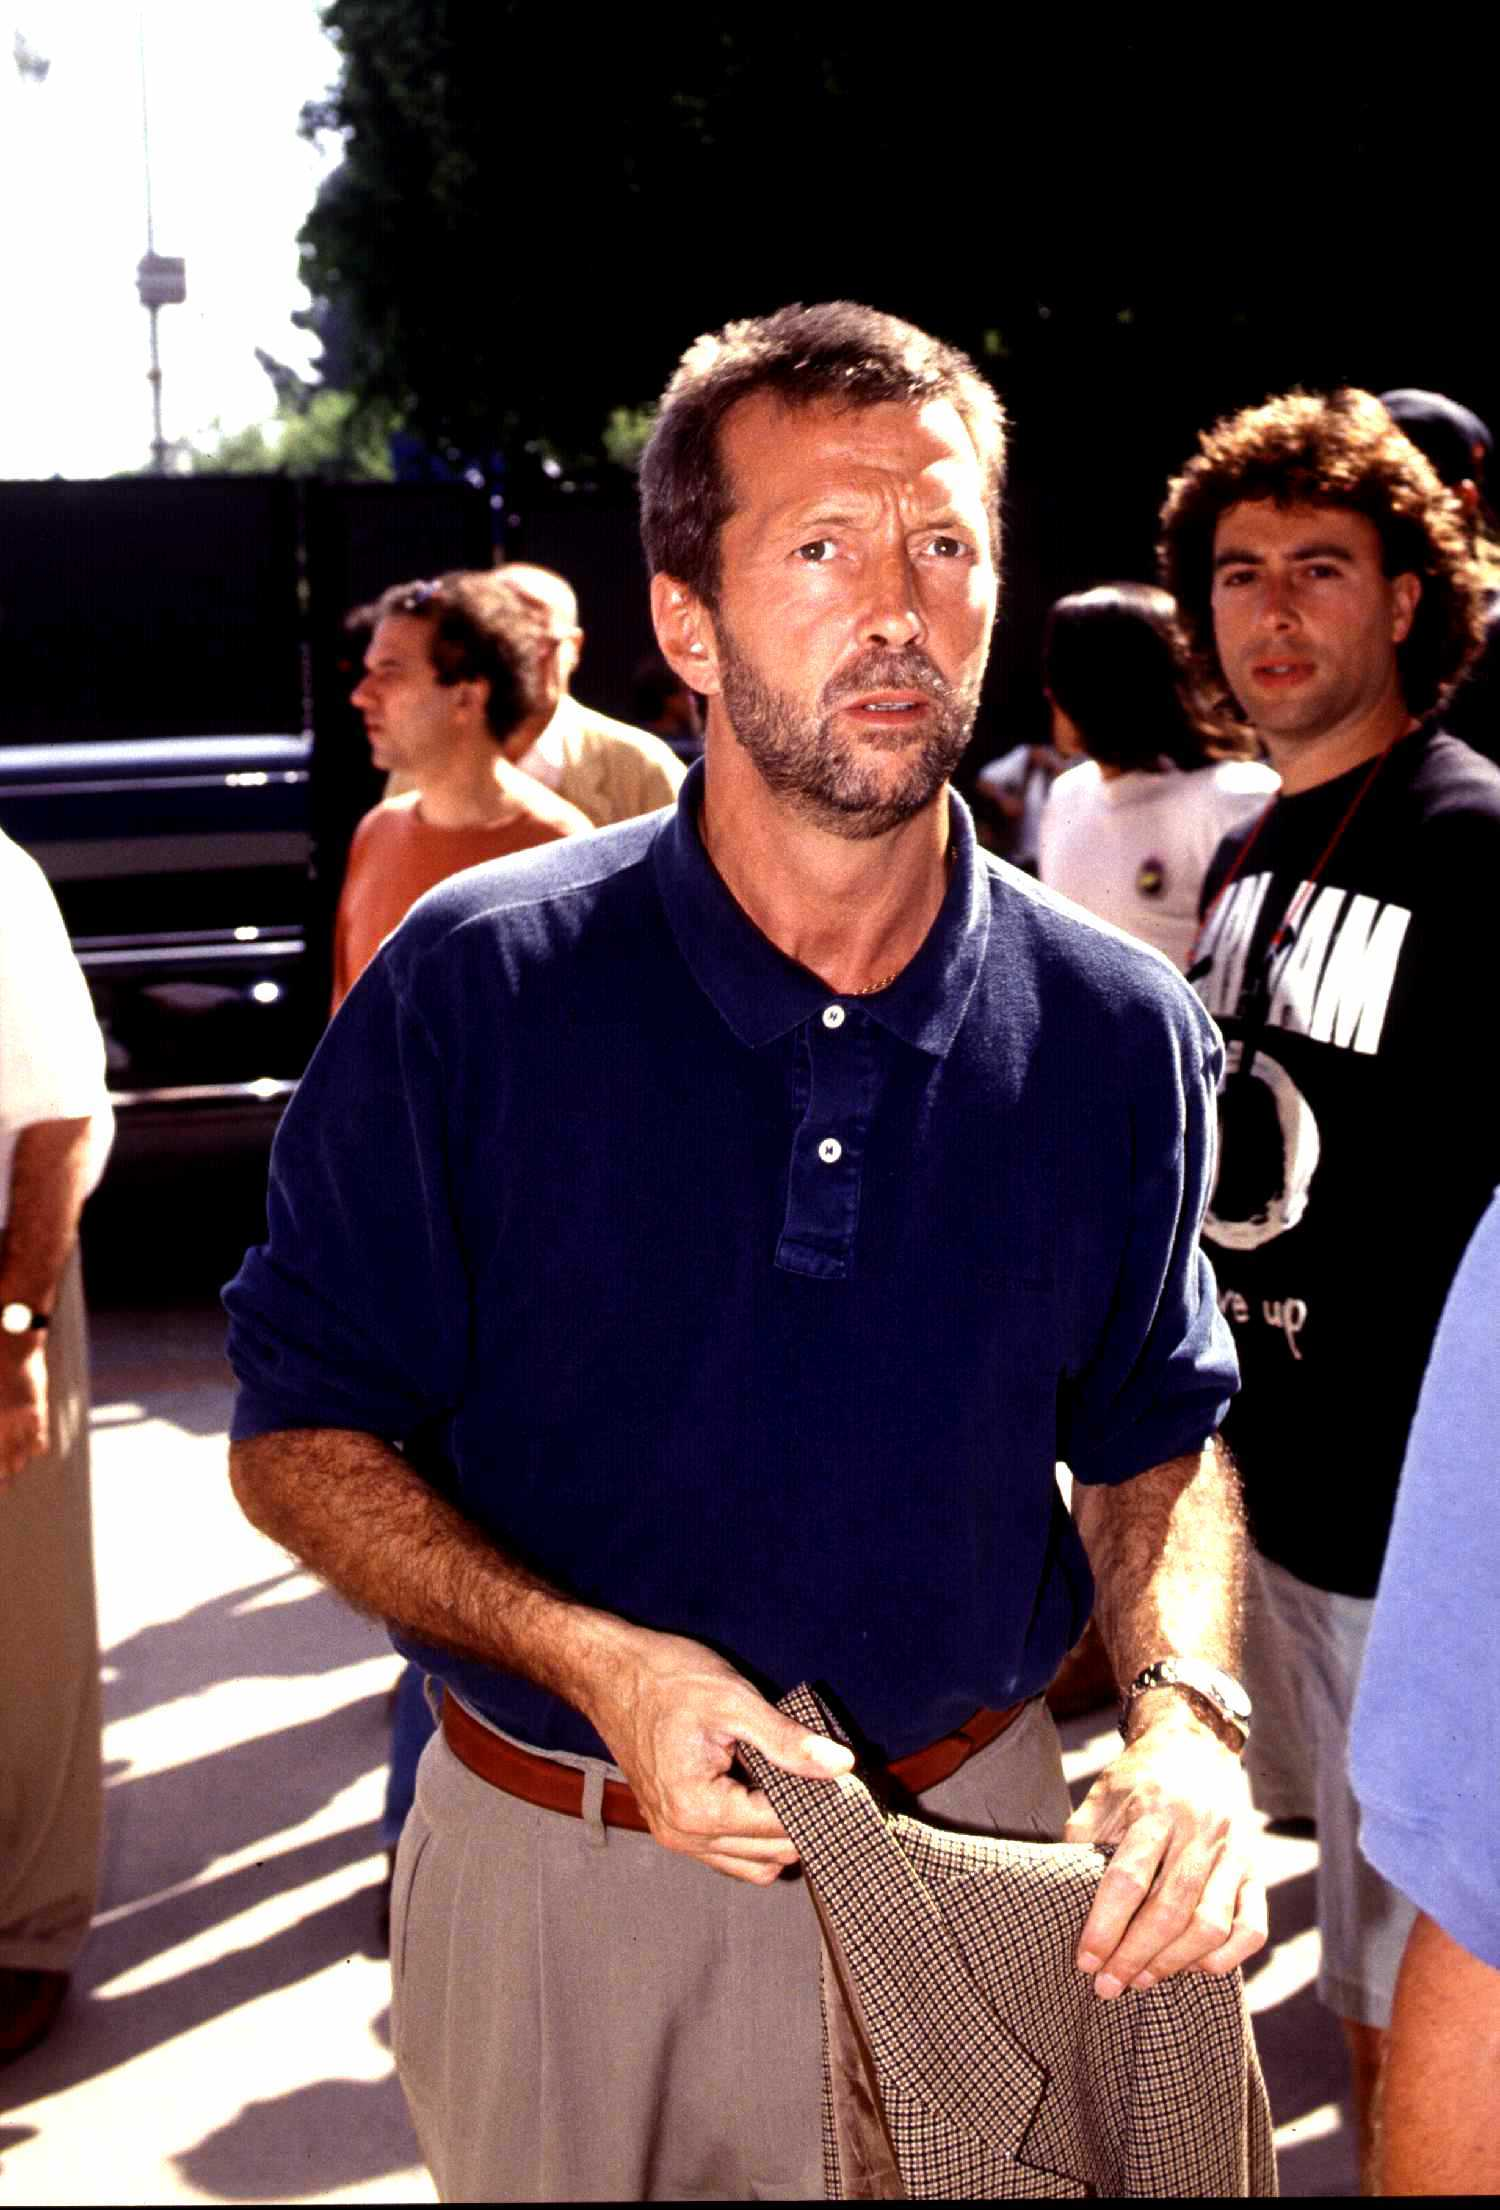 Eric Clapton at the MTV Awards in 1992, Universal City. | Source: Getty Images